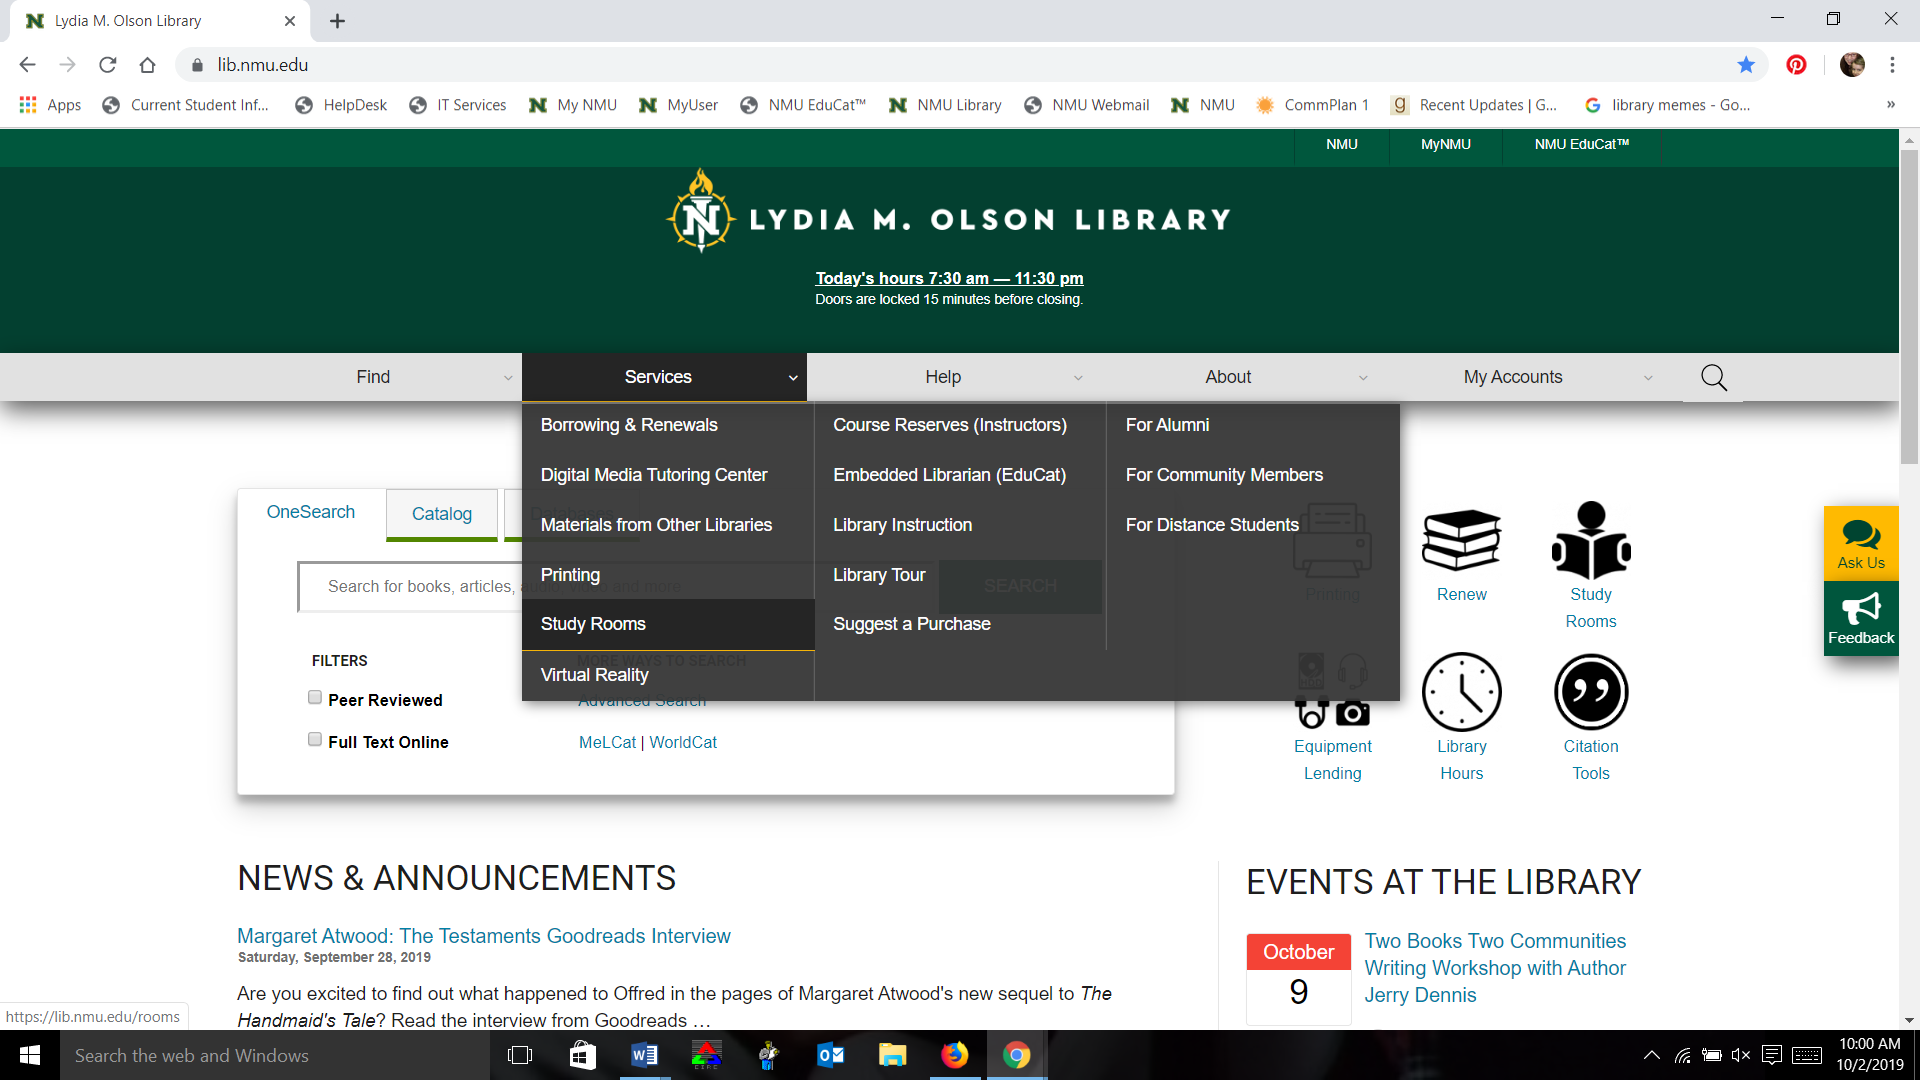 Screen shot of library website with Services menu visible